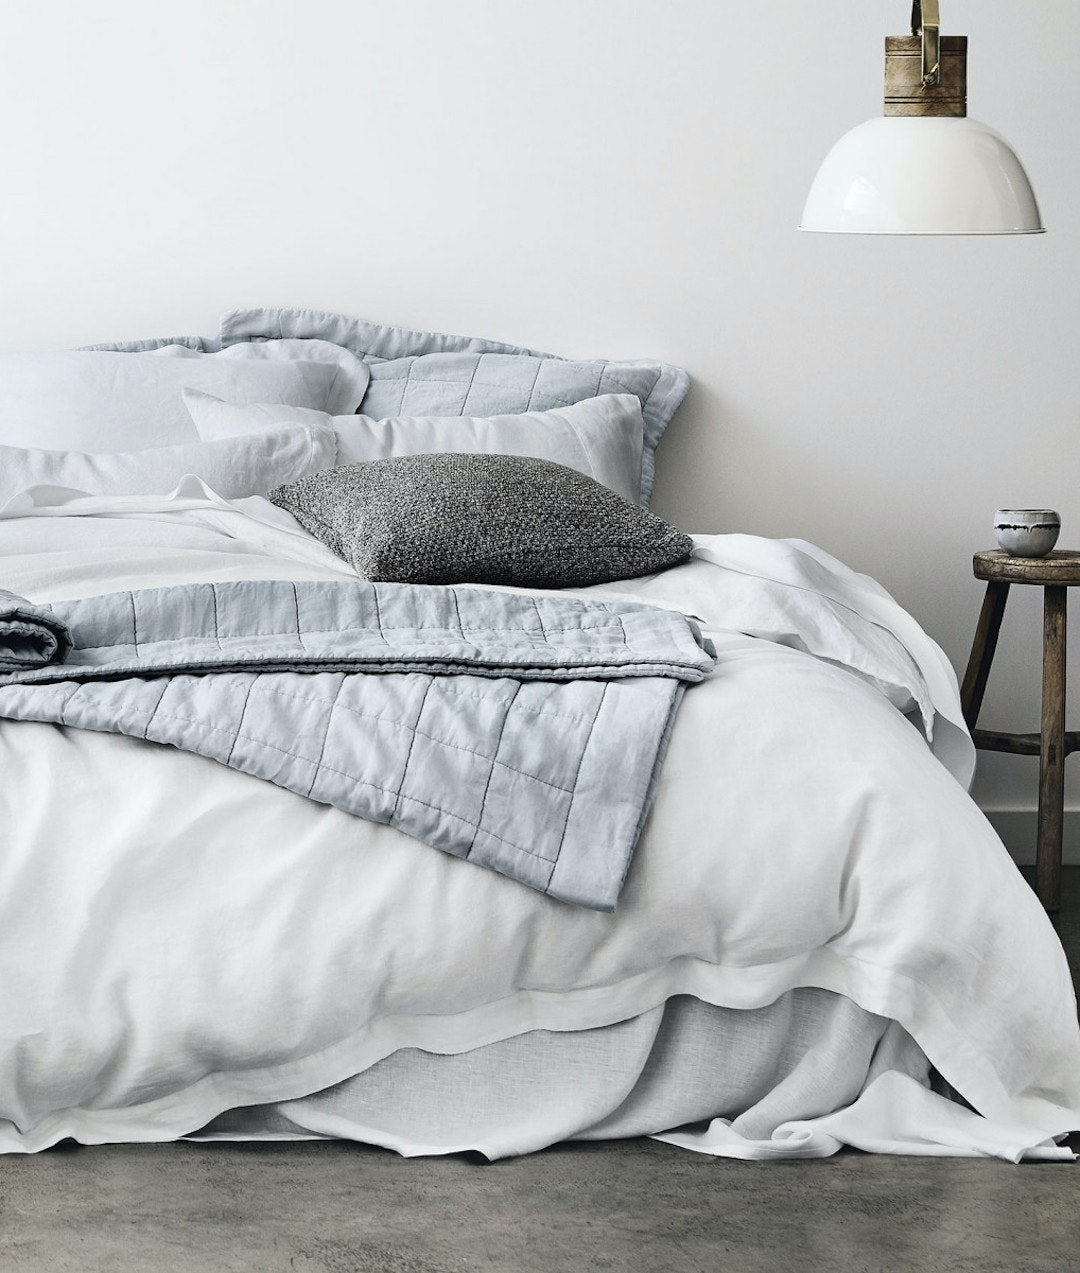 A cosy bed littered with white and blue quilts and sheets.